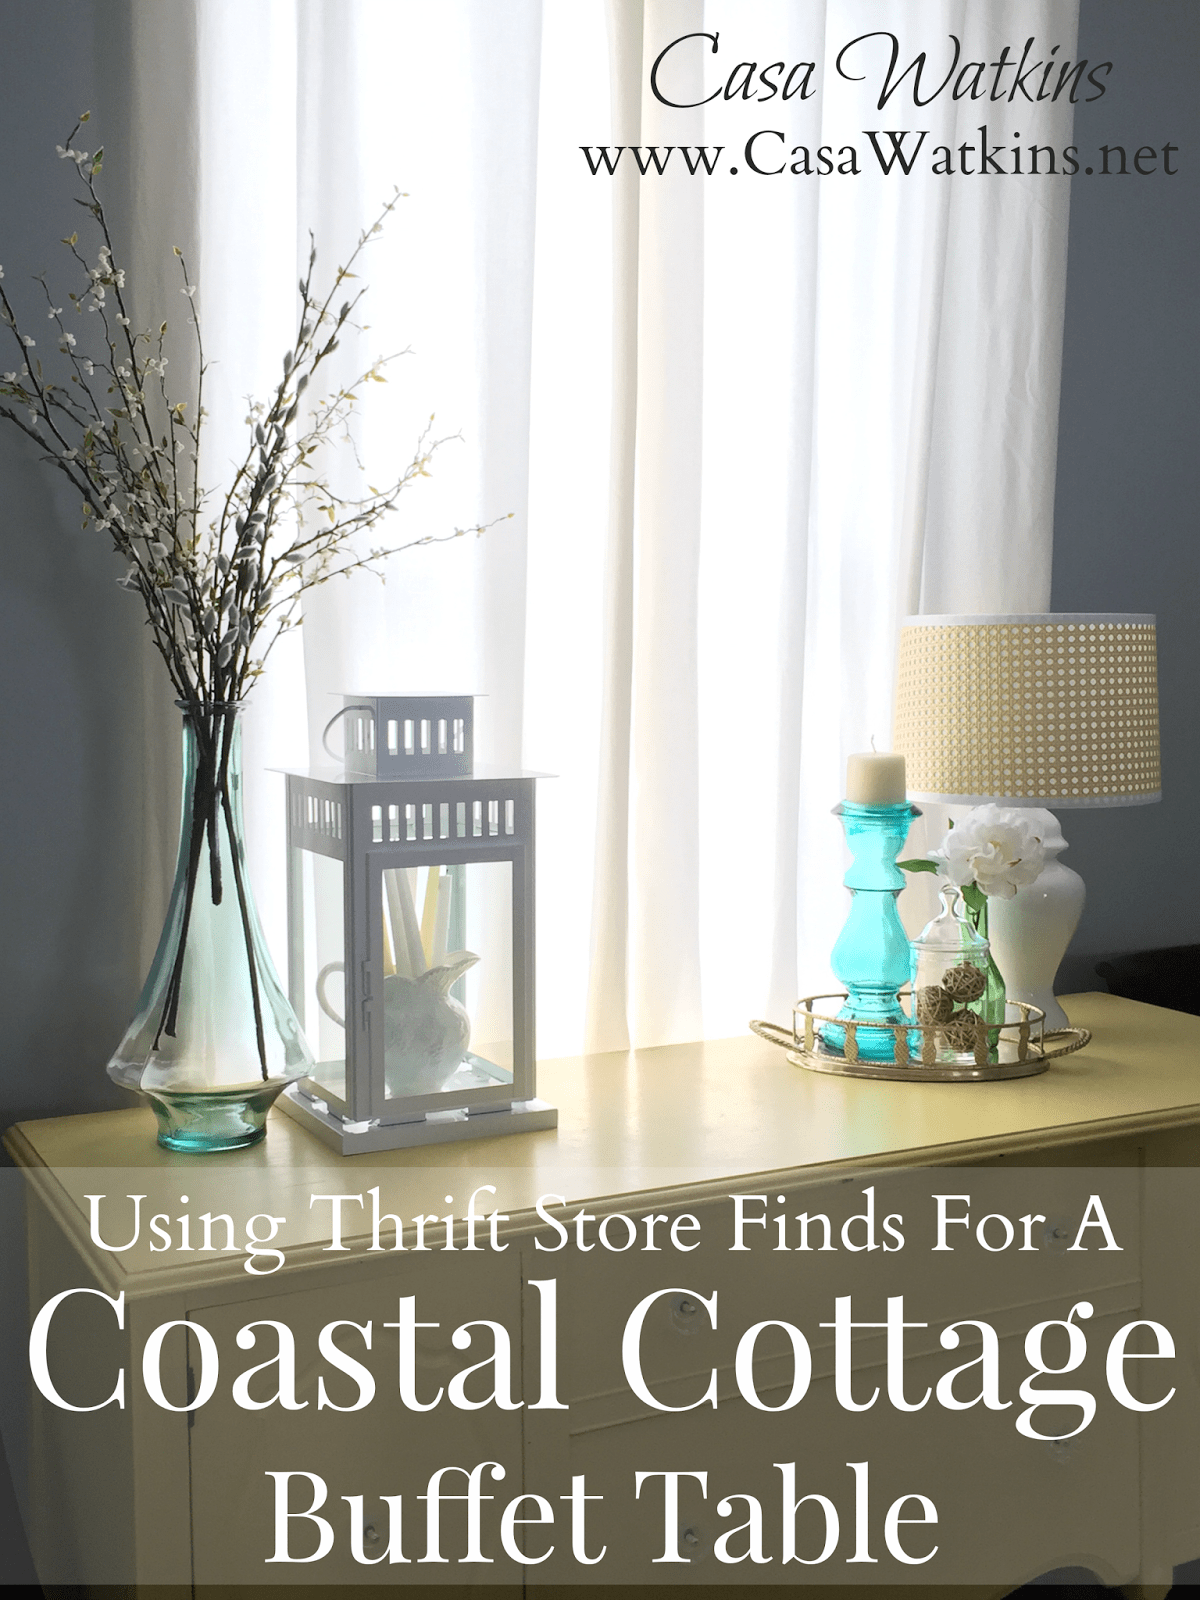 Using Thrift Store Finds For A Coastal Cottage Buffet Table - Casa ...